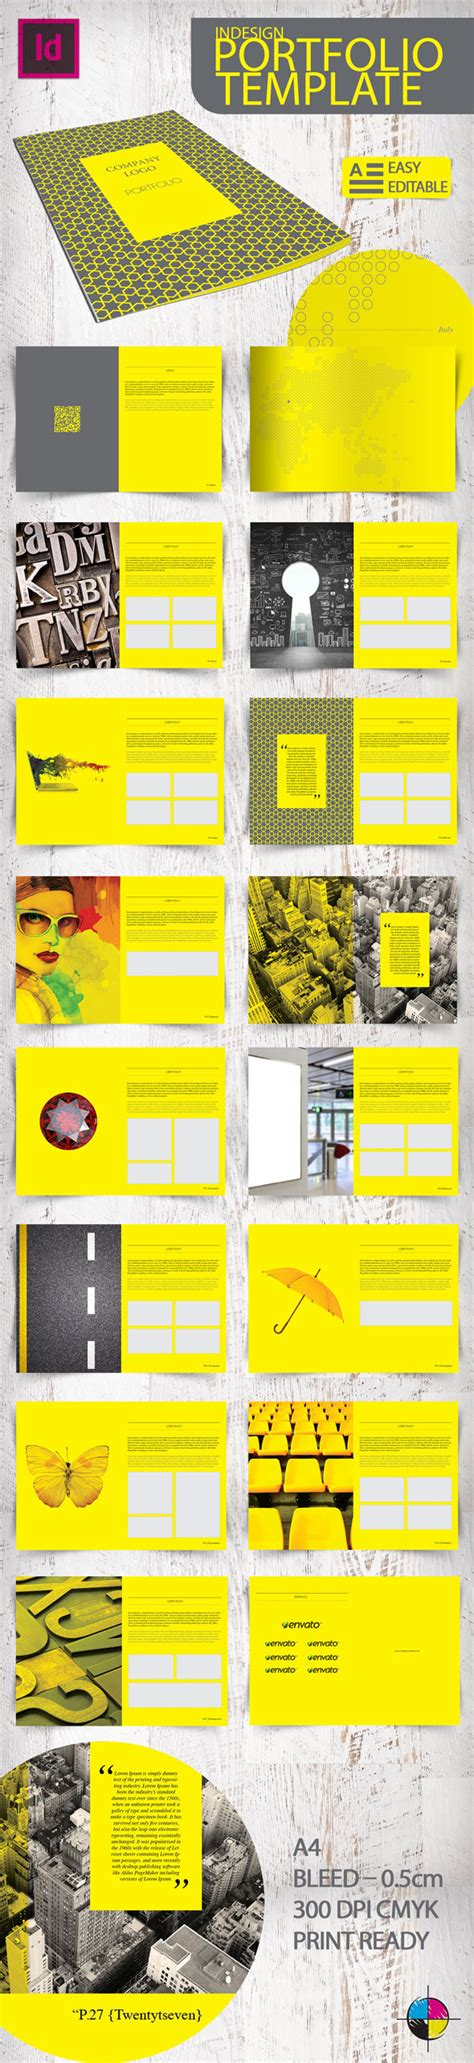 Indesign Portfolio Template On Behance Graphic Design Portfolio Template Indesign